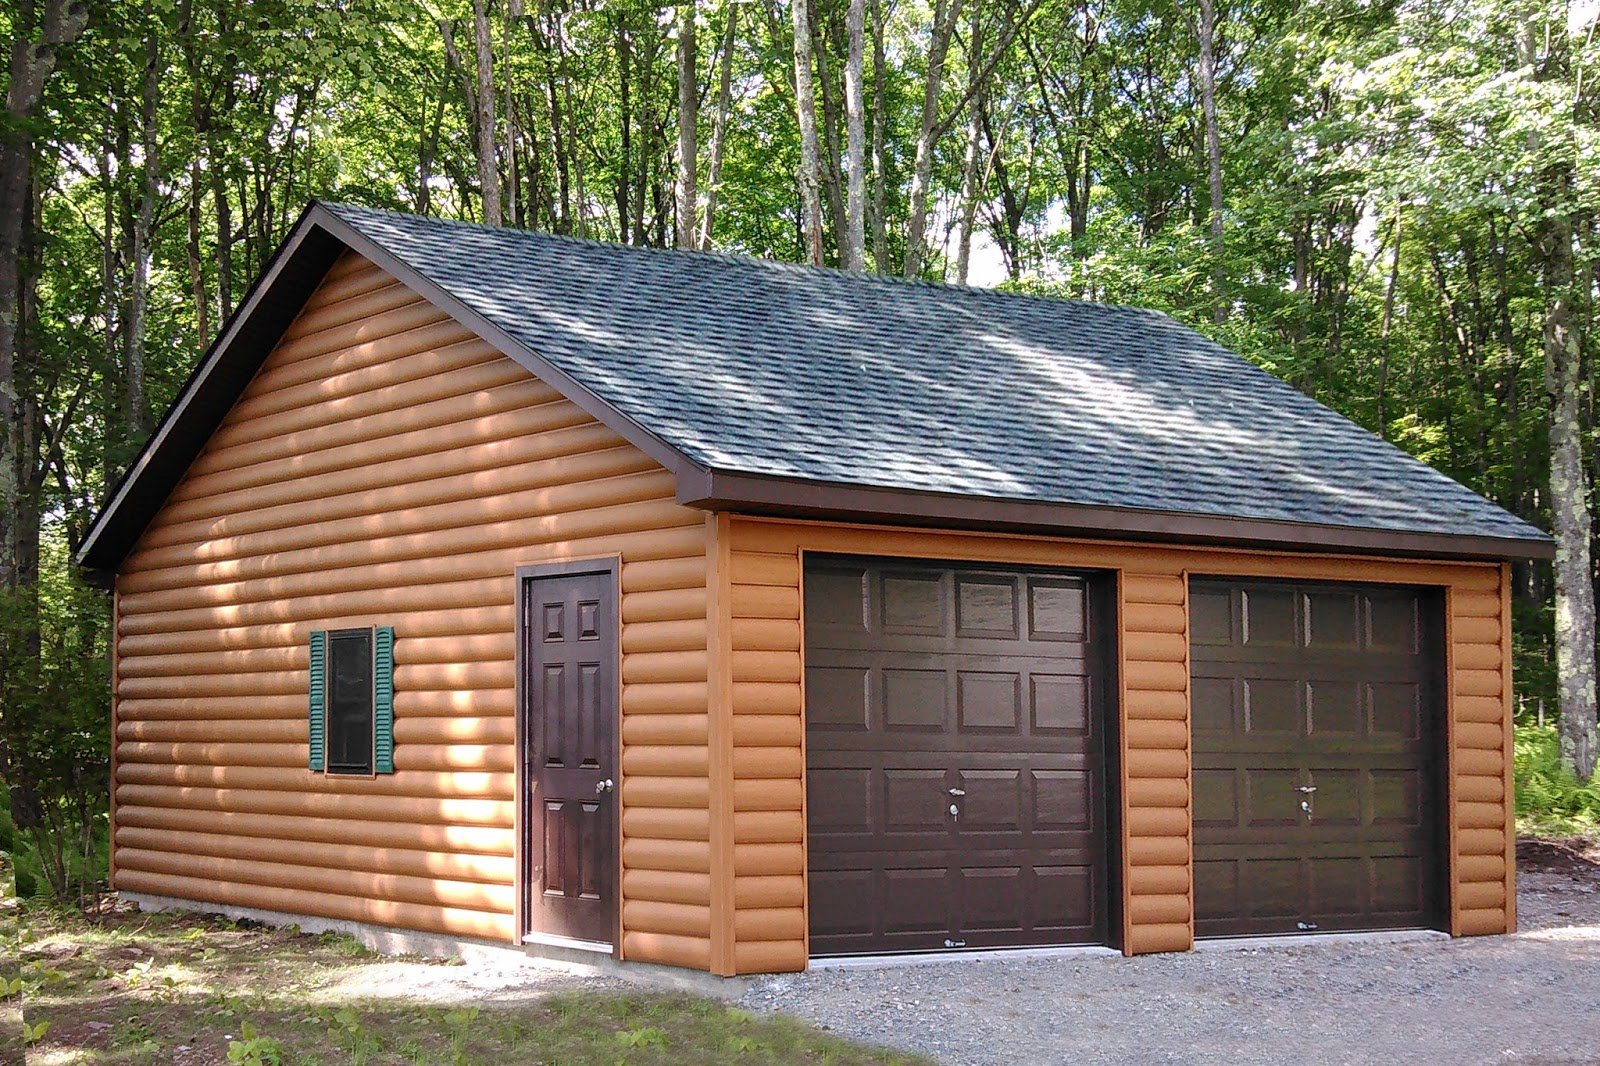 Prefab car garages for sale in pa nj ny ct de md va Garage with apartment prefab